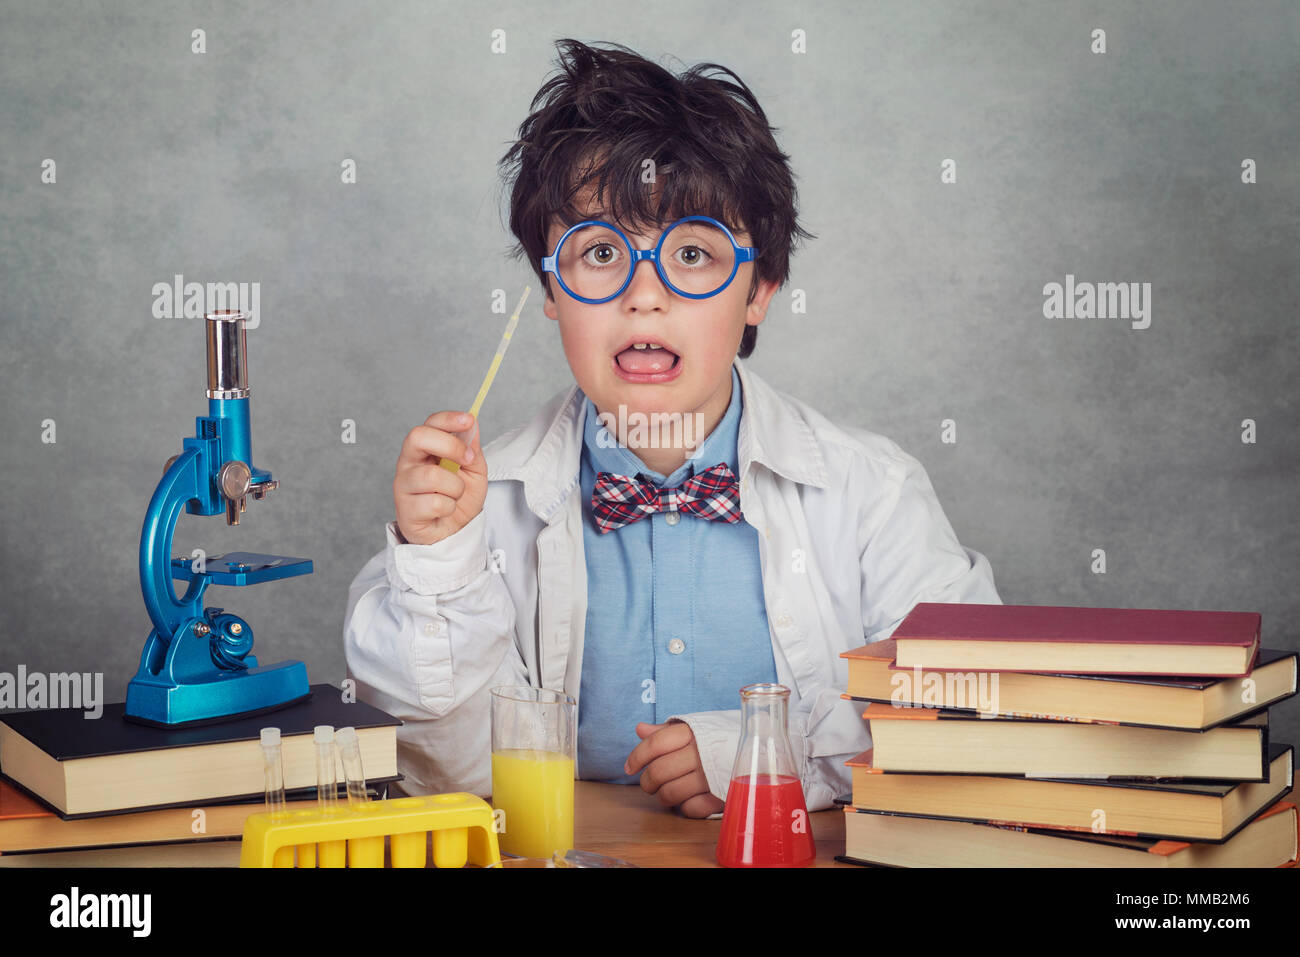 boy is making science experiments in a laboratory on gray background - Stock Image